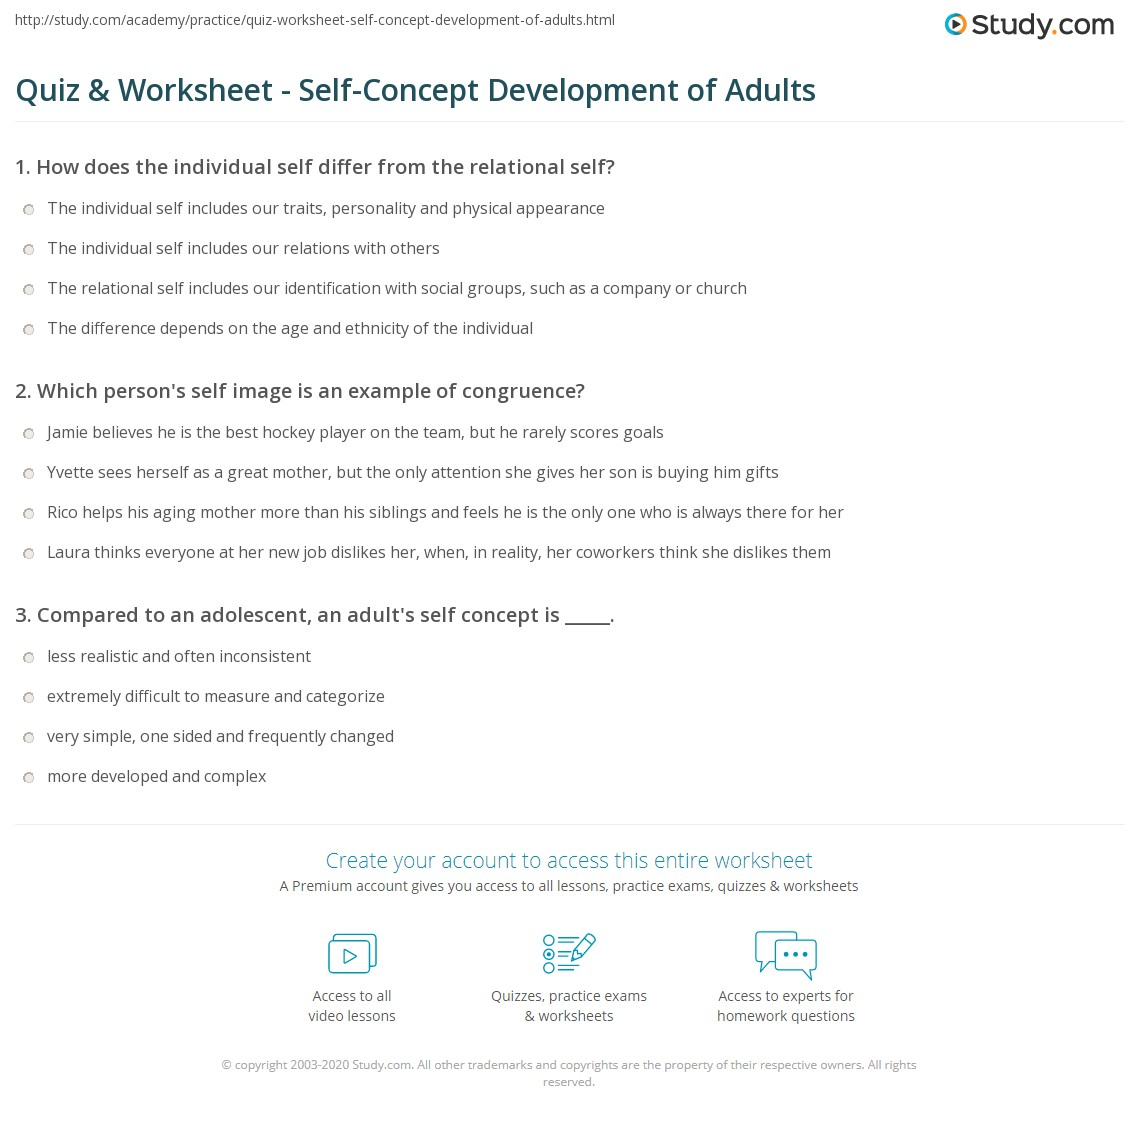 Free Worksheet Low Self Esteem Worksheets self concept worksheets rringband quiz worksheet development of adults study com